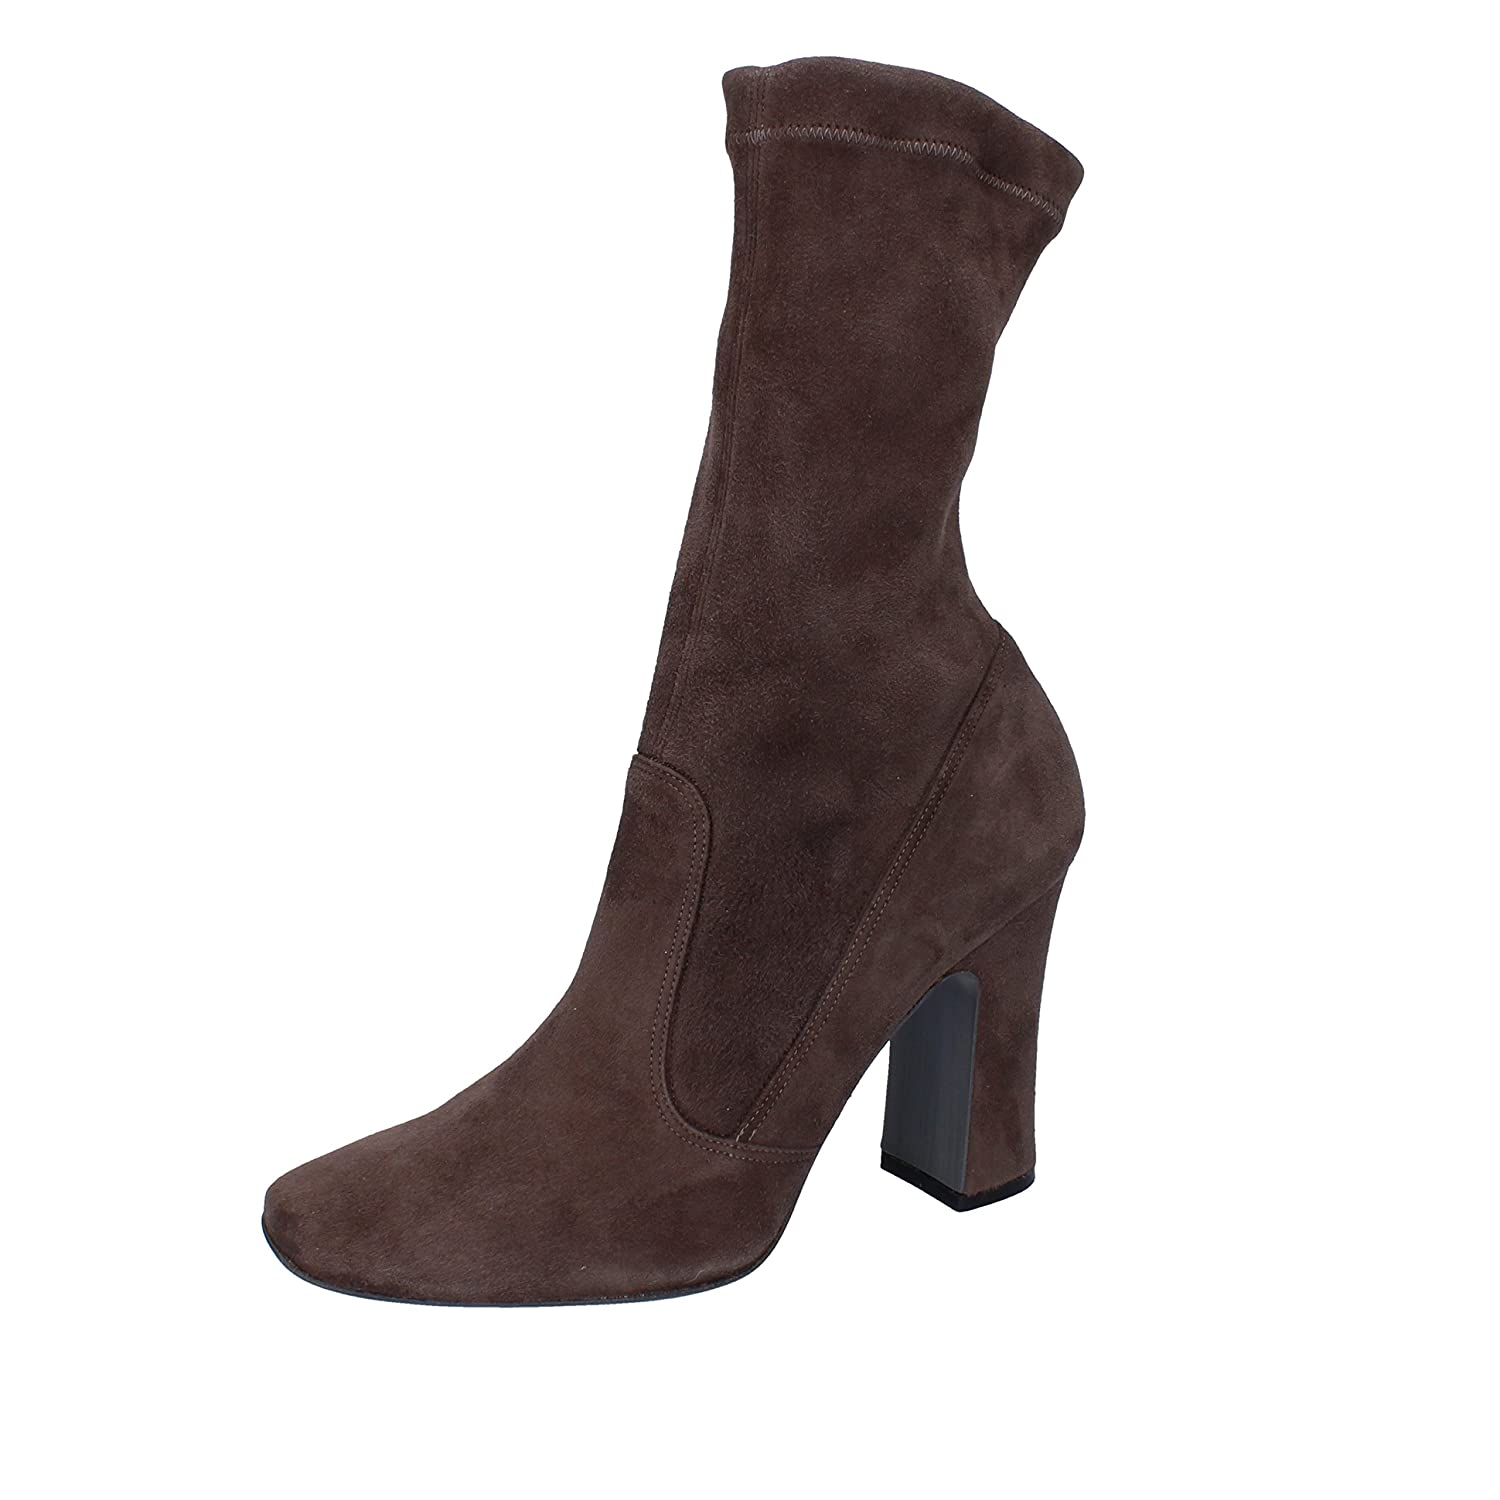 - HALSTON Boots Womens Suede Brown